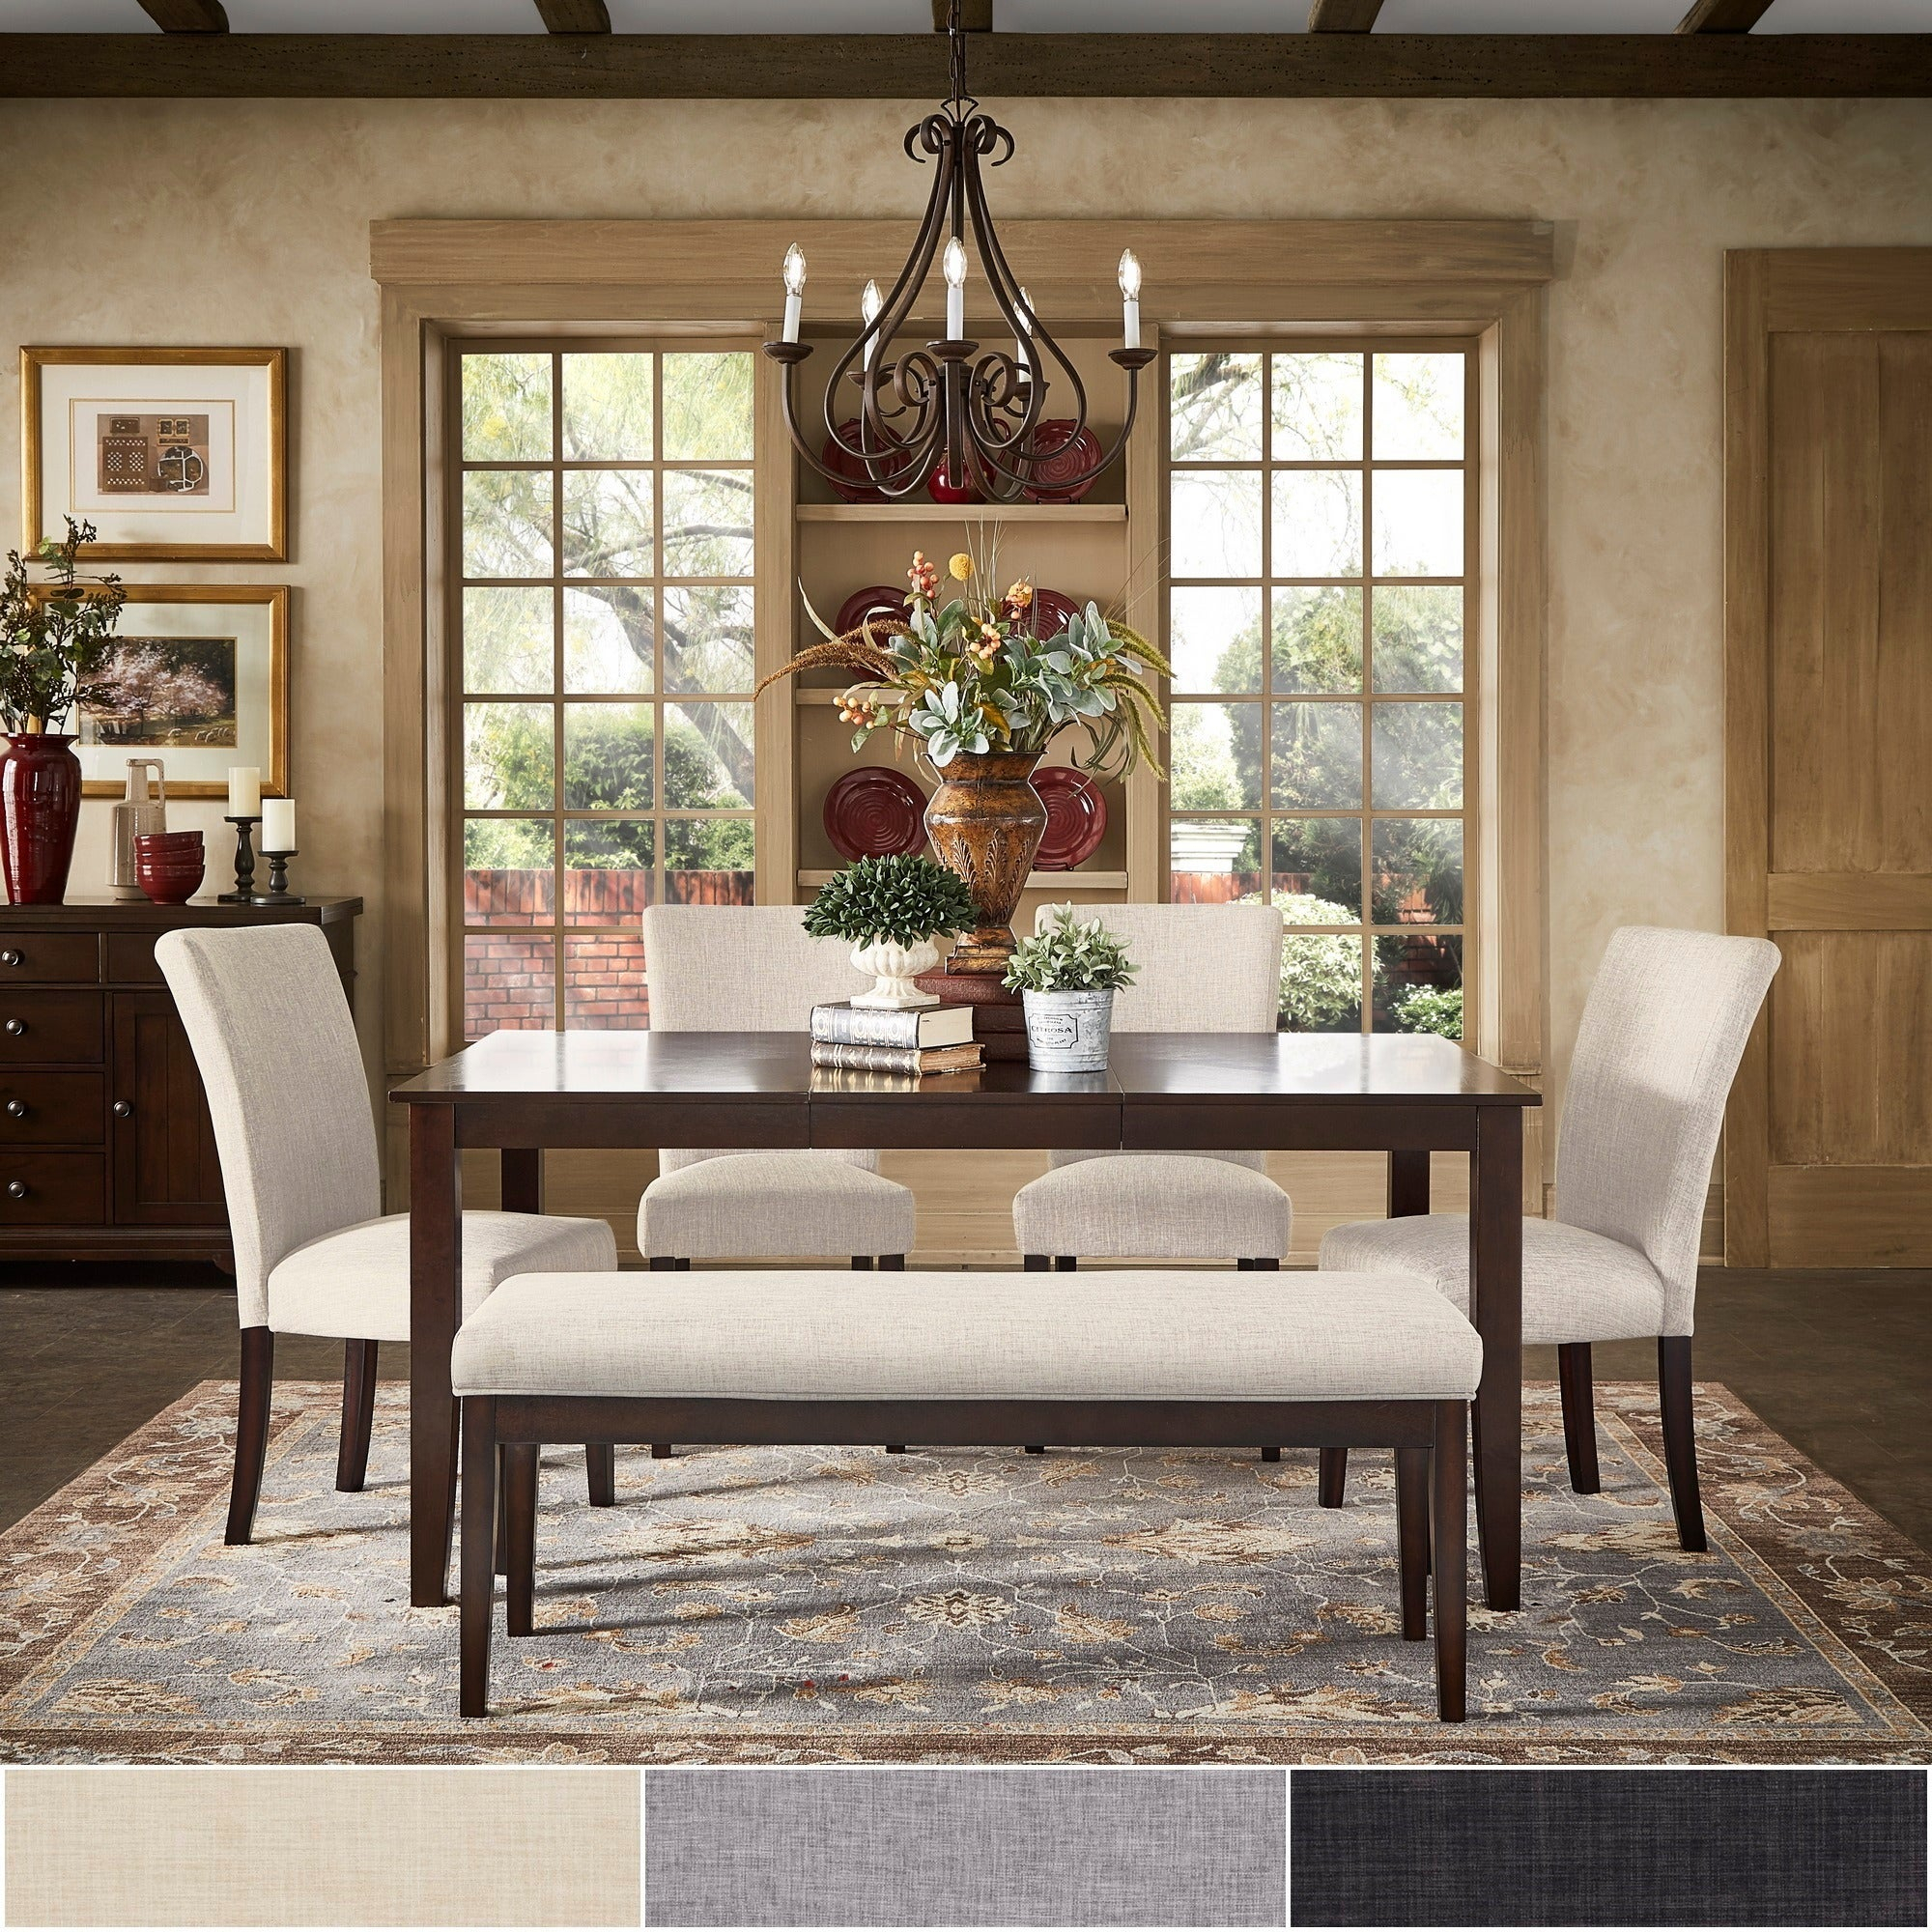 Buy 6 Piece Sets Kitchen & Dining Room Sets Online At Overstock With Regard To Most Current Osterman 6 Piece Extendable Dining Sets (Set Of 6) (View 10 of 20)